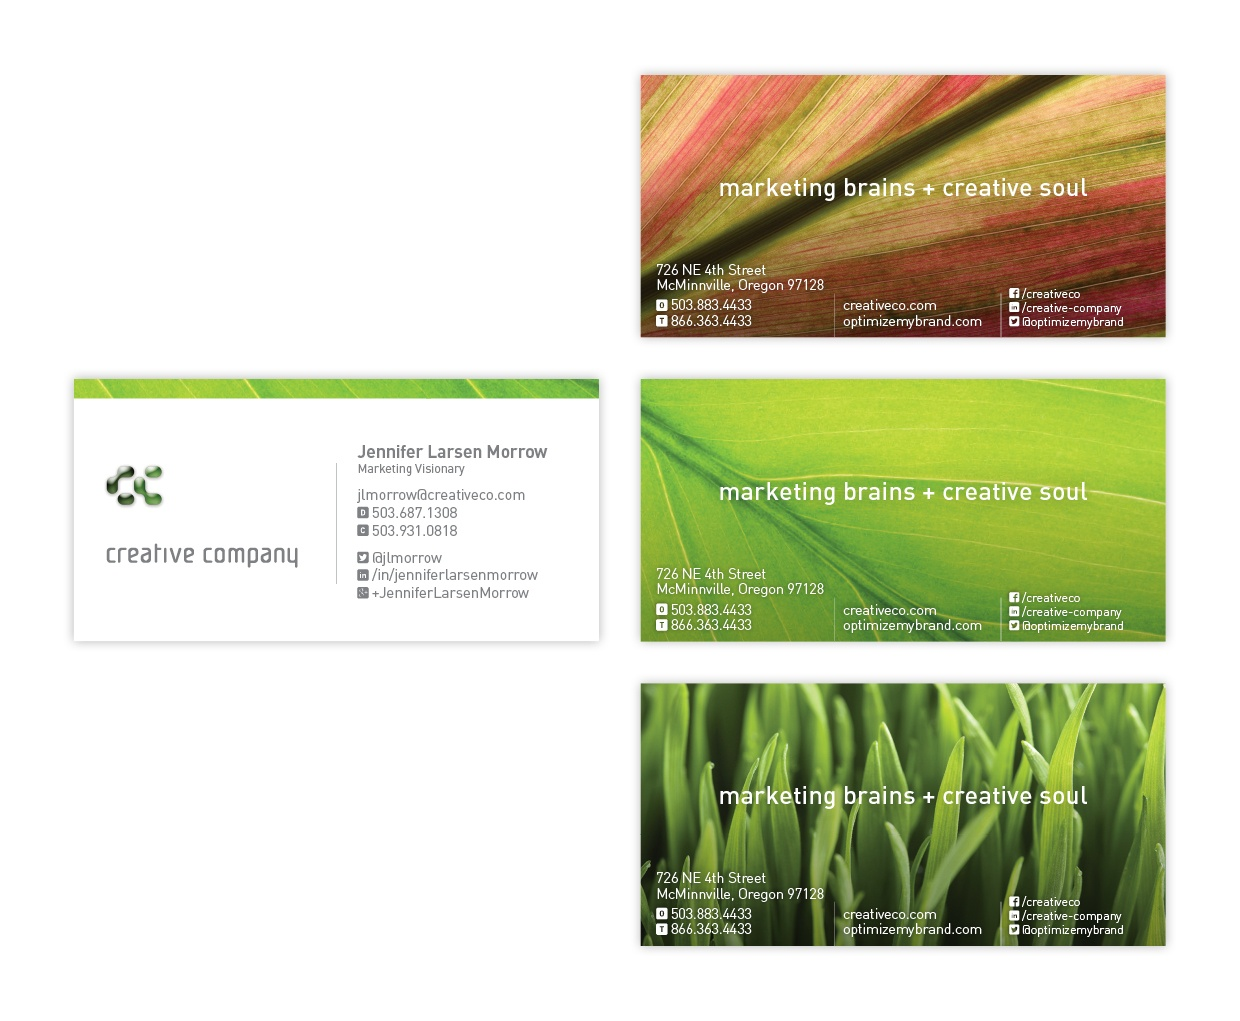 The newest version of the Creative Company business cards. A fresh, clean look.